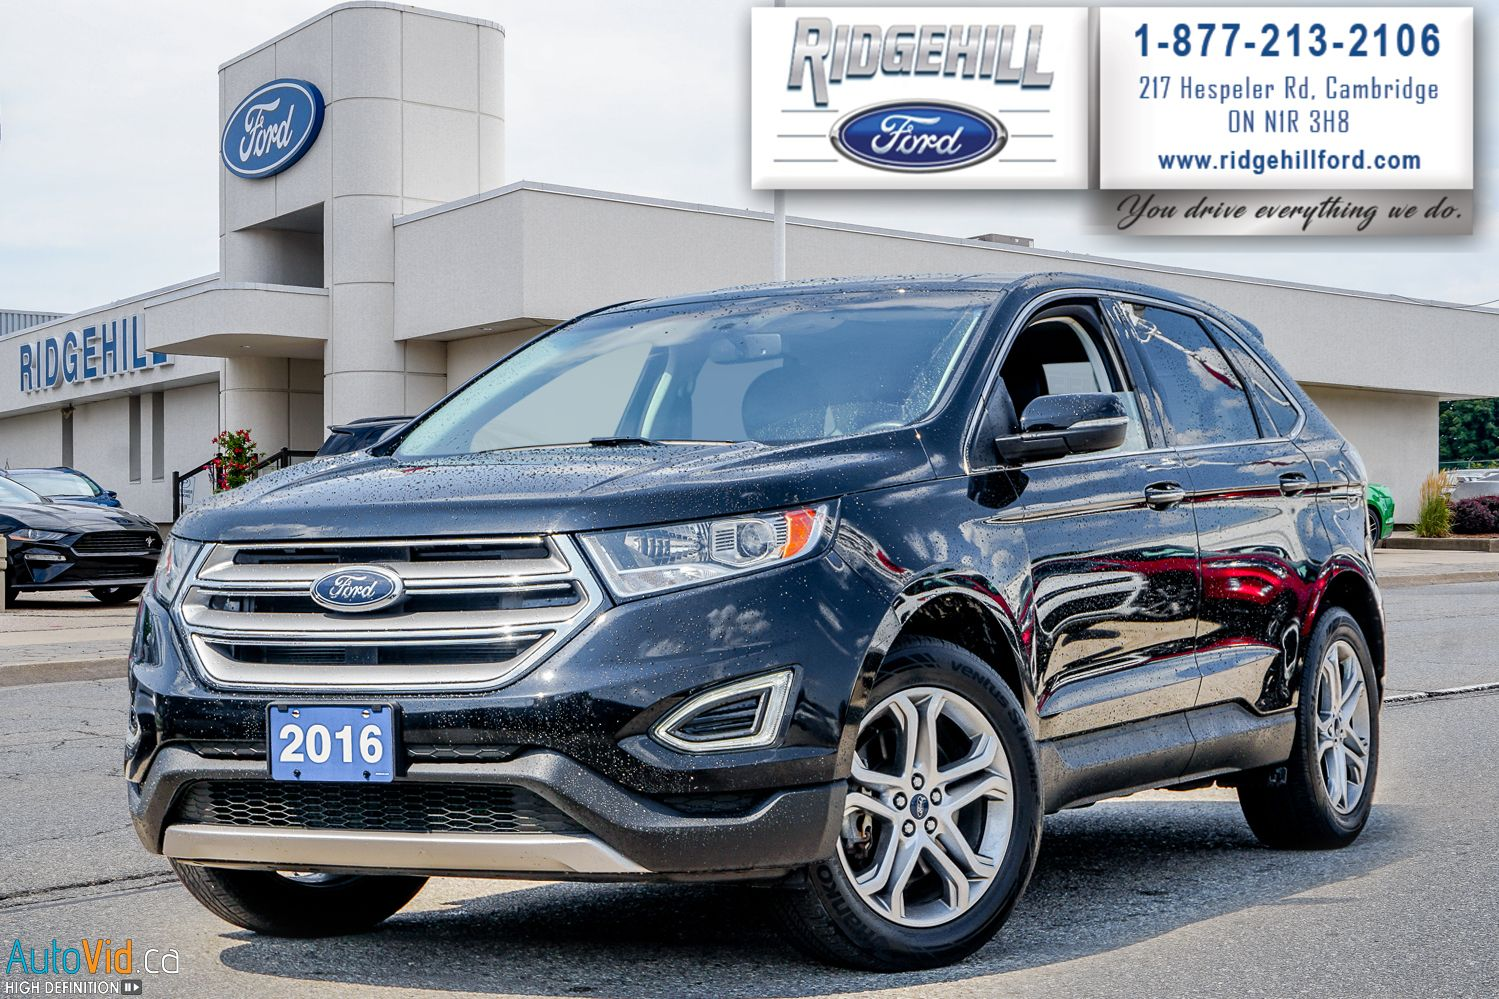 2016 Ford Edge Image